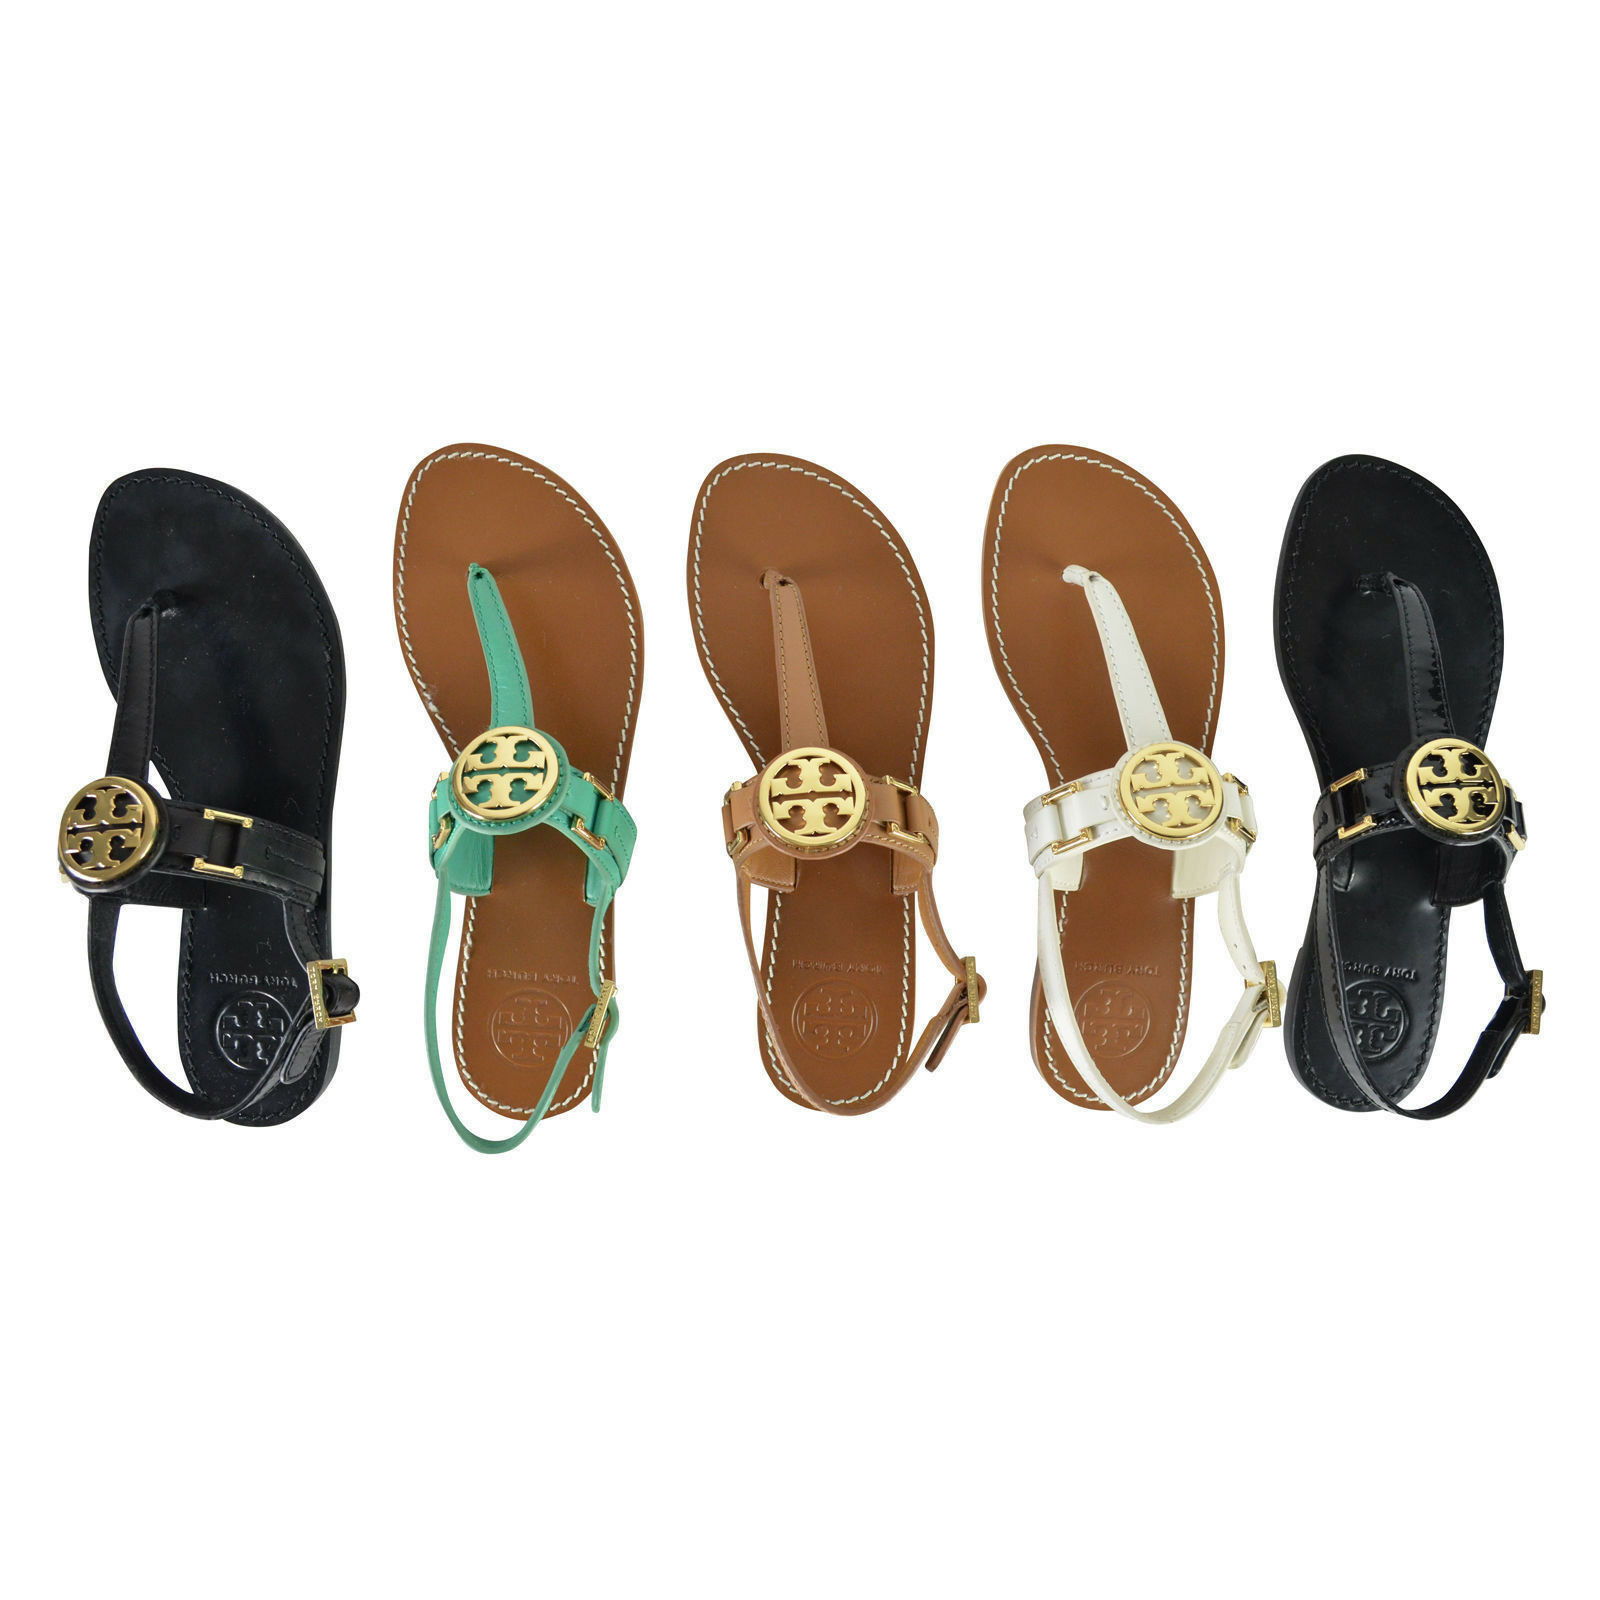 77590855269 NIB Tory Burch Cassia French Calf Leather Flat Thong Sandals Variety of  Colors